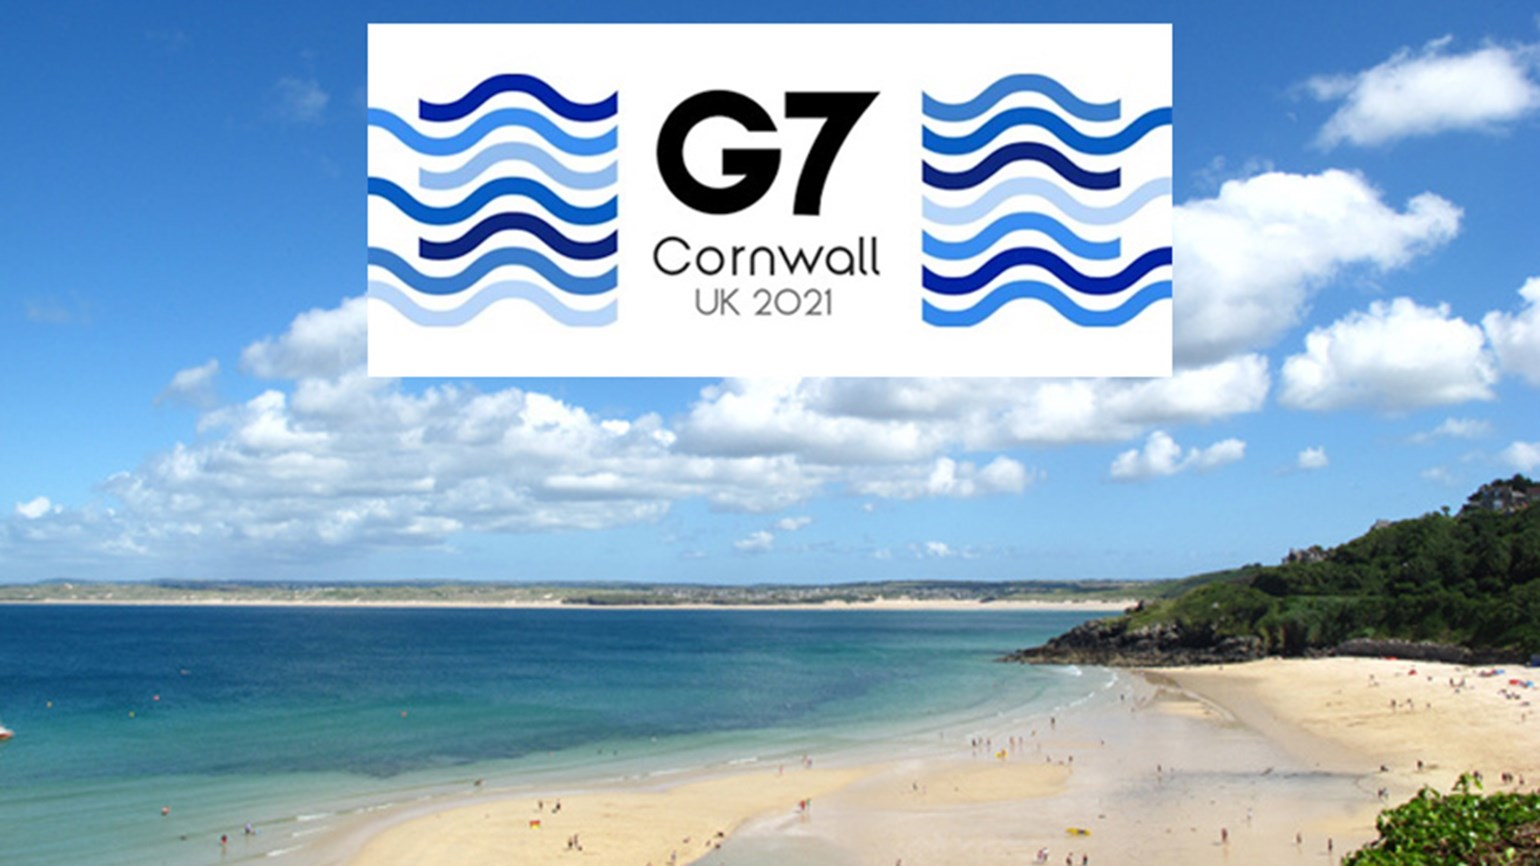 g7 carbis bay cornwall